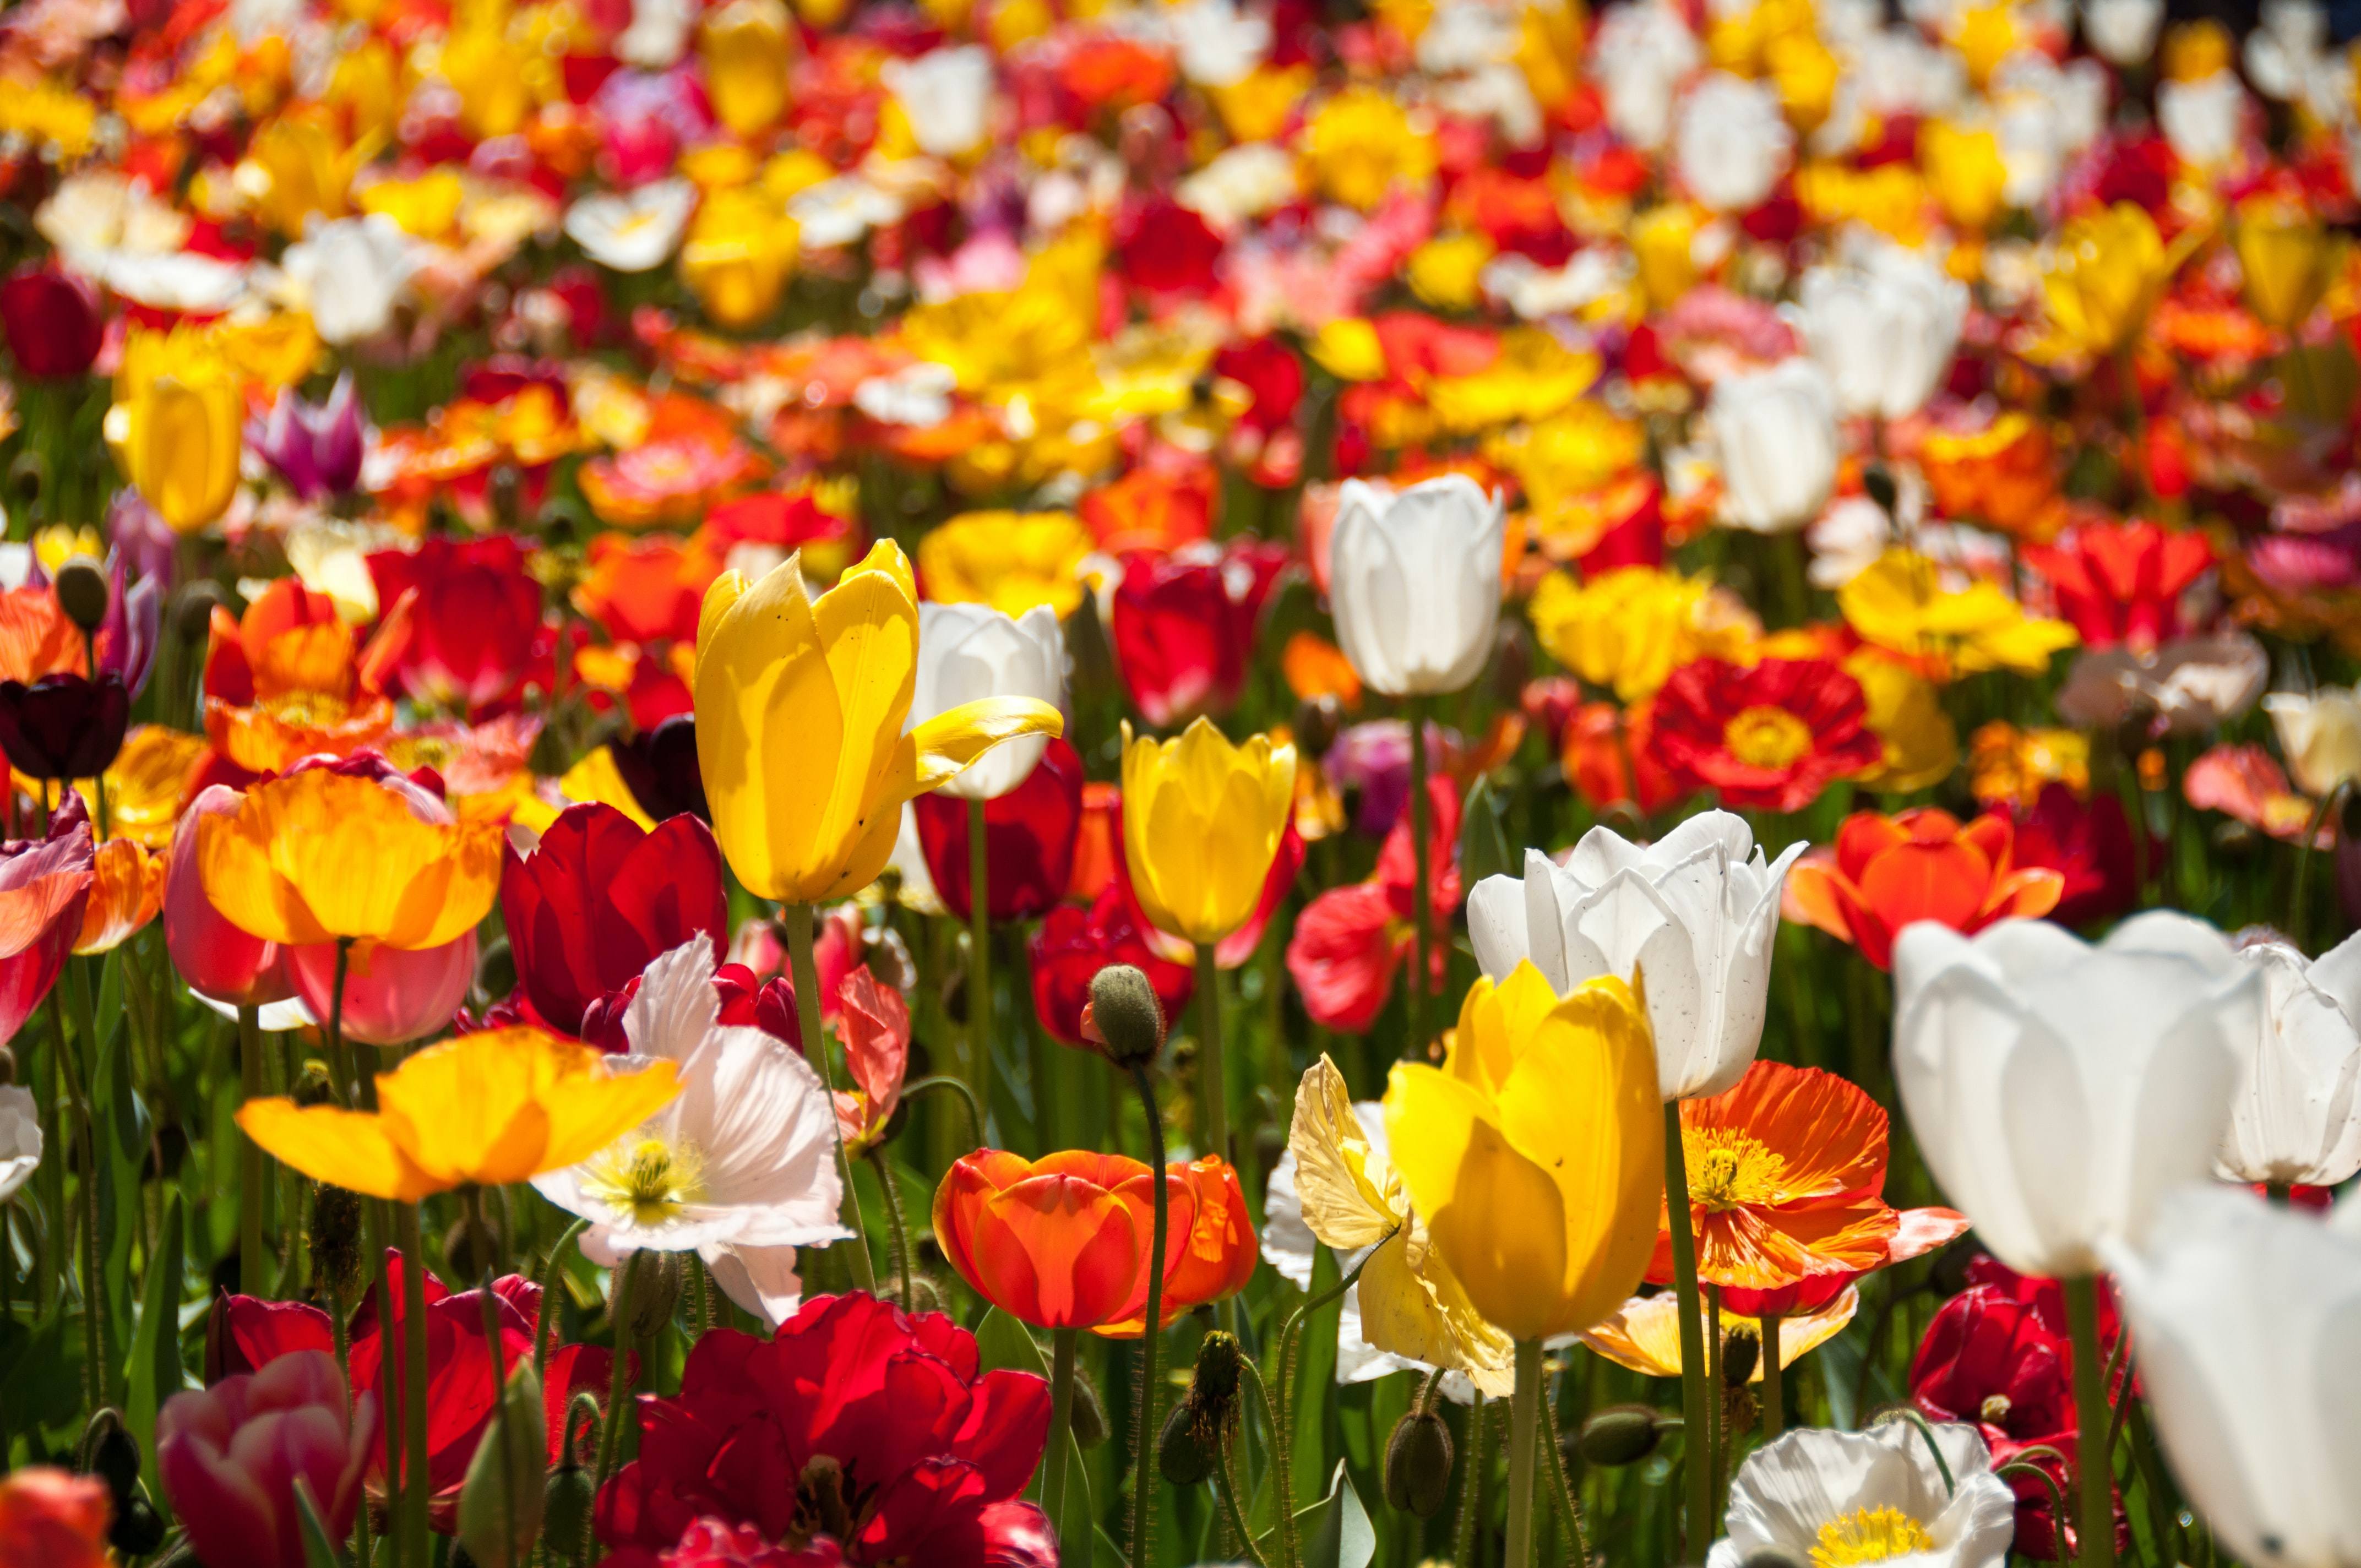 assorted-color petaled flowers at daytime